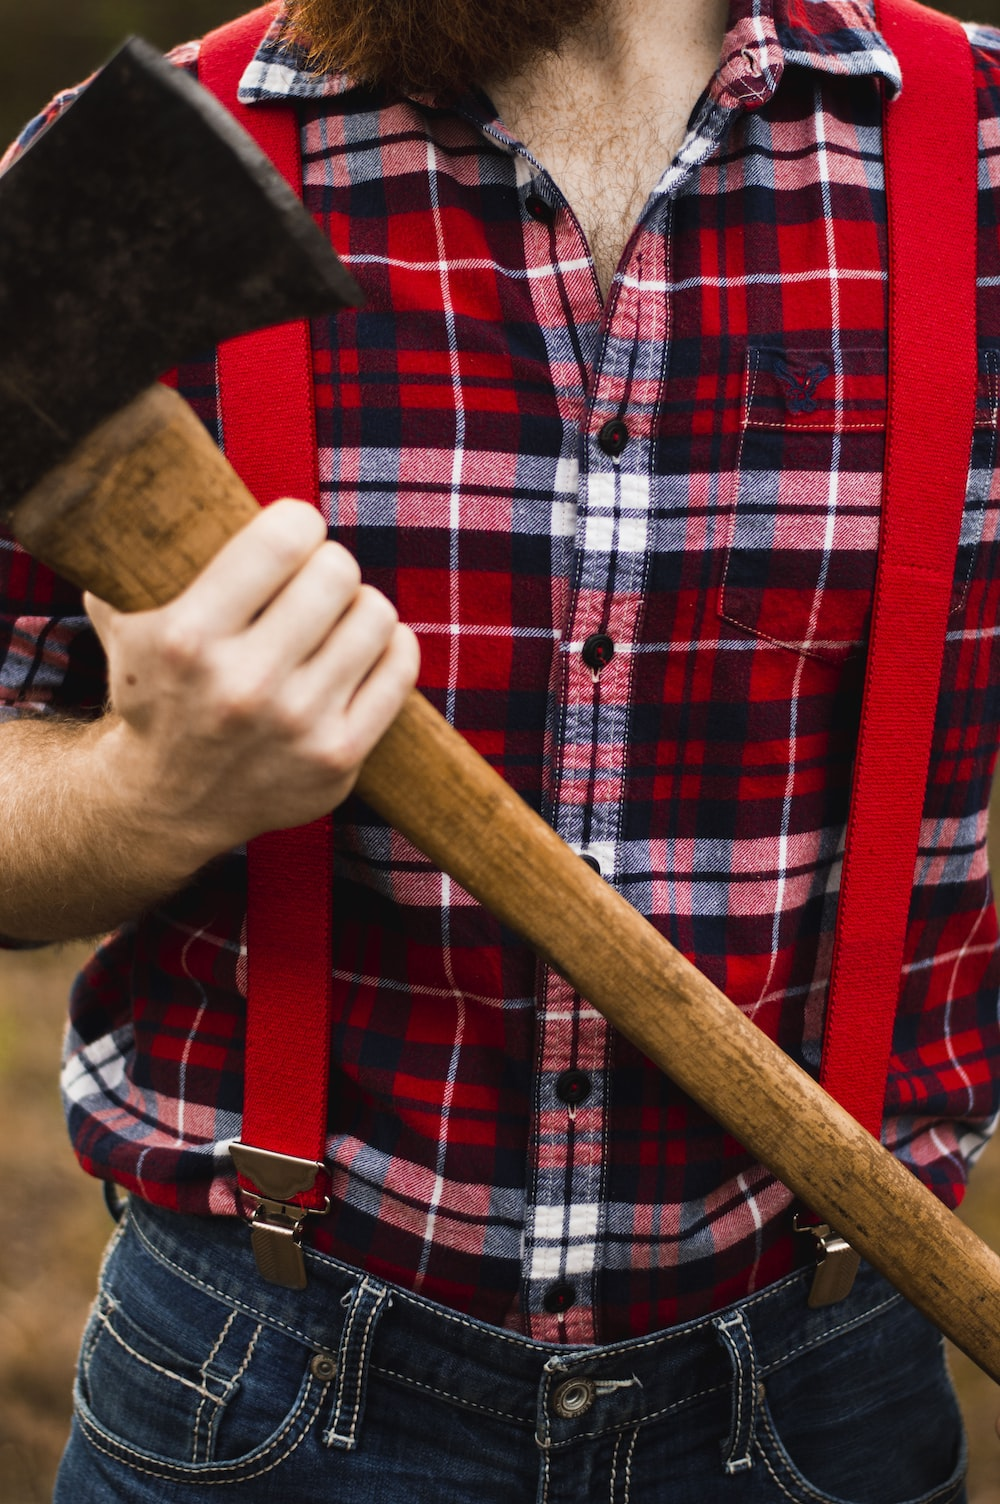 person carrying brown handle axe